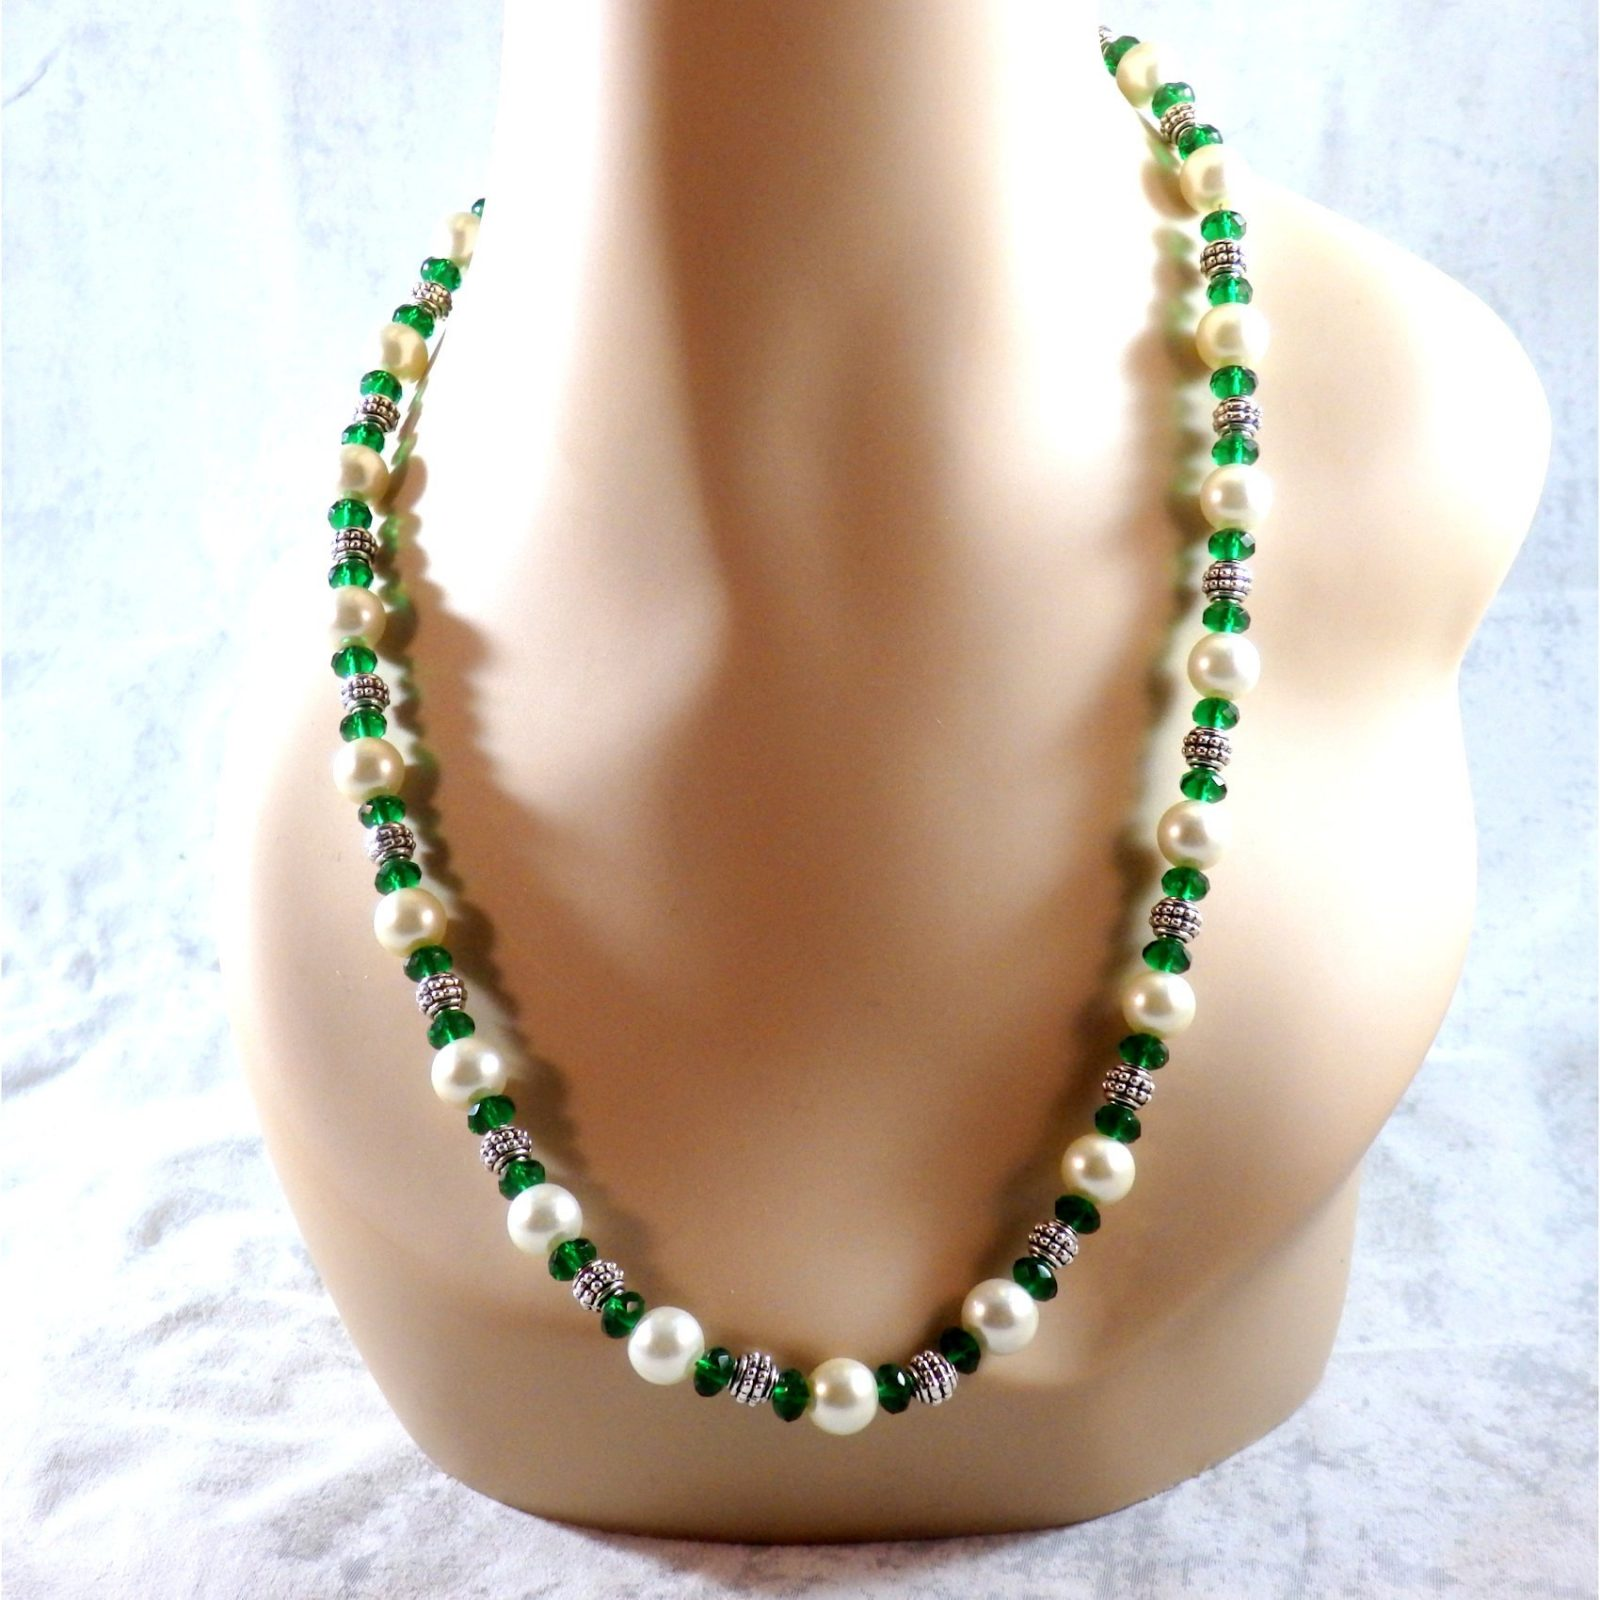 Green and White Beaded Glass Necklace with Silver Tone Accents 839b